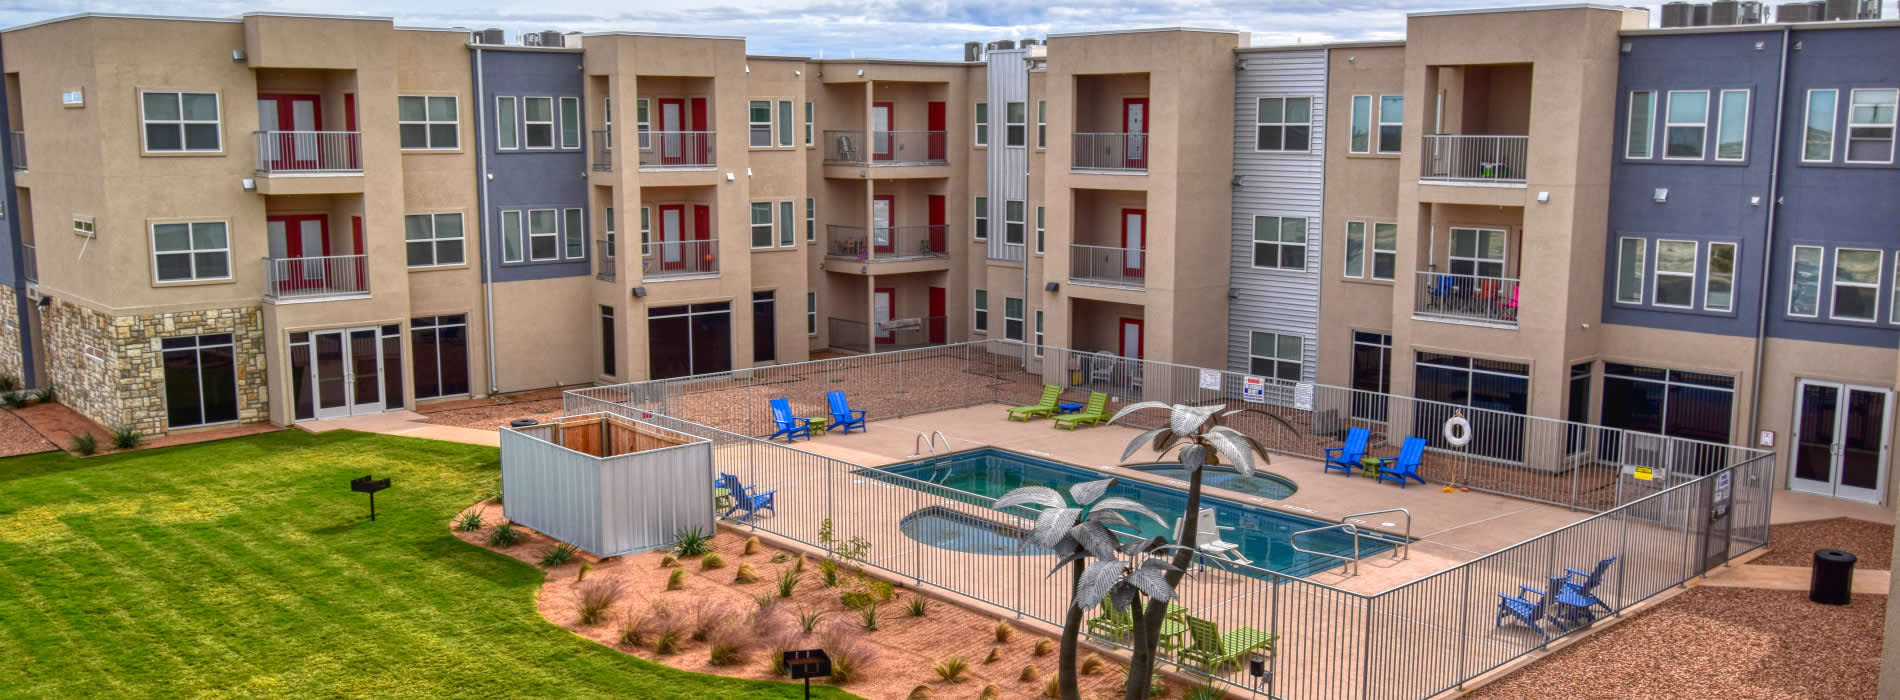 View Brittany Place Apartments Odessa Tx Cool Home Design Photo At